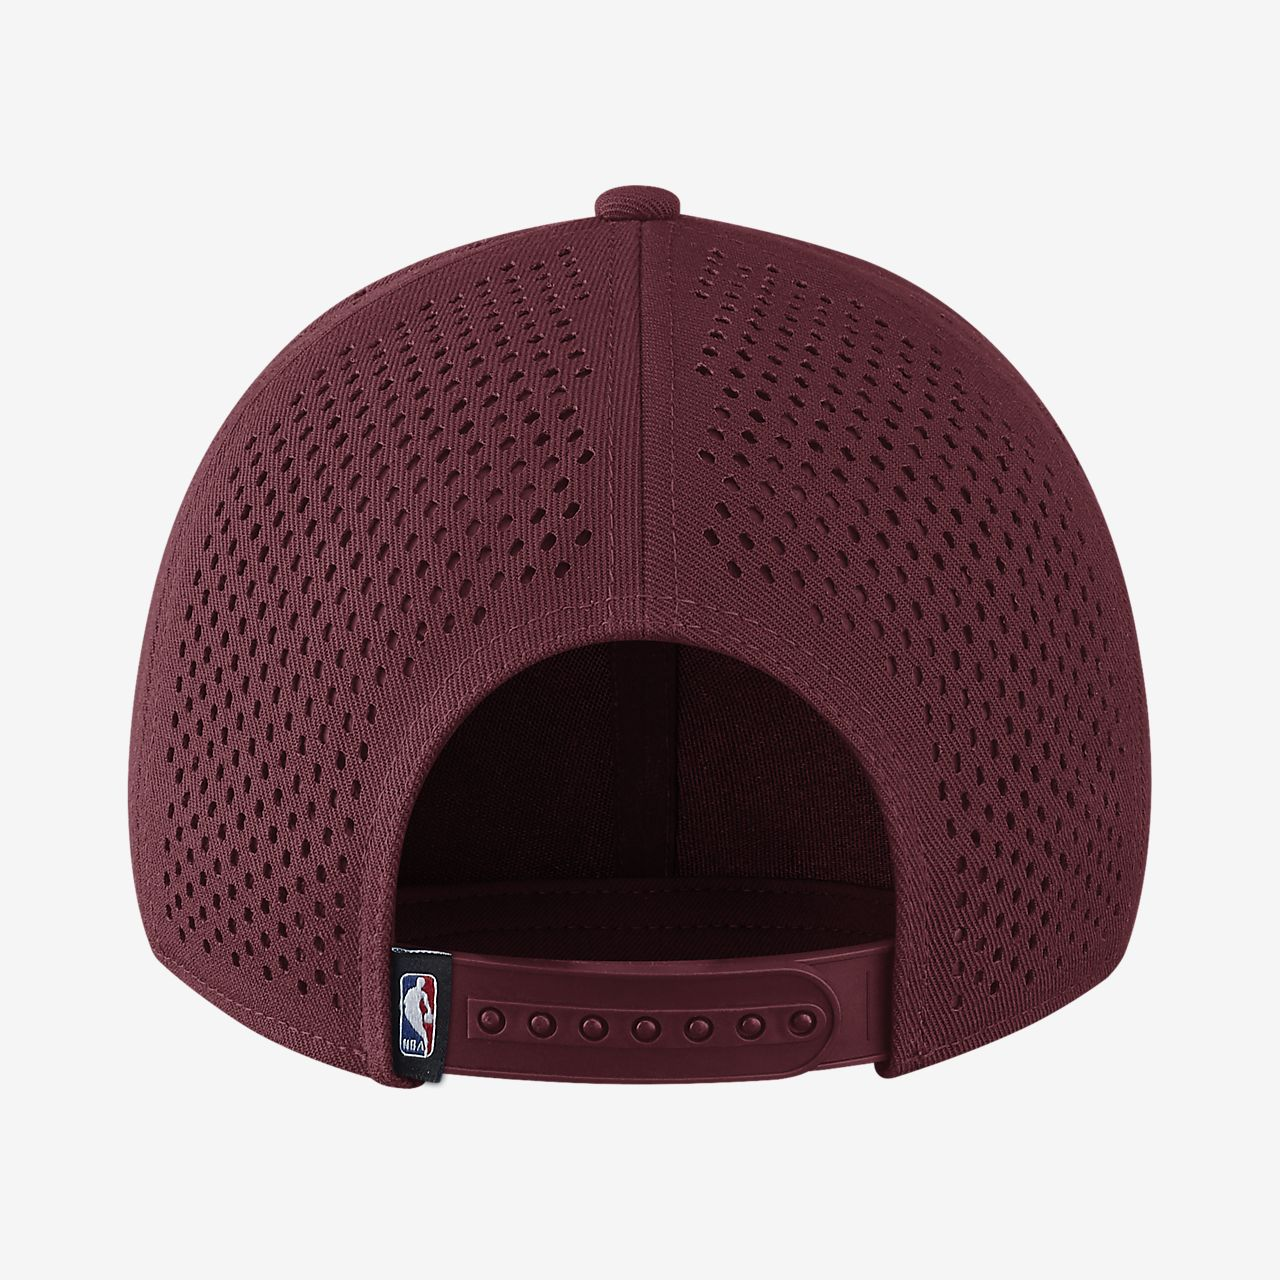 5a6239bd979 ... Cleveland Cavaliers Nike AeroBill Classic99 Unisex Adjustable NBA Hat